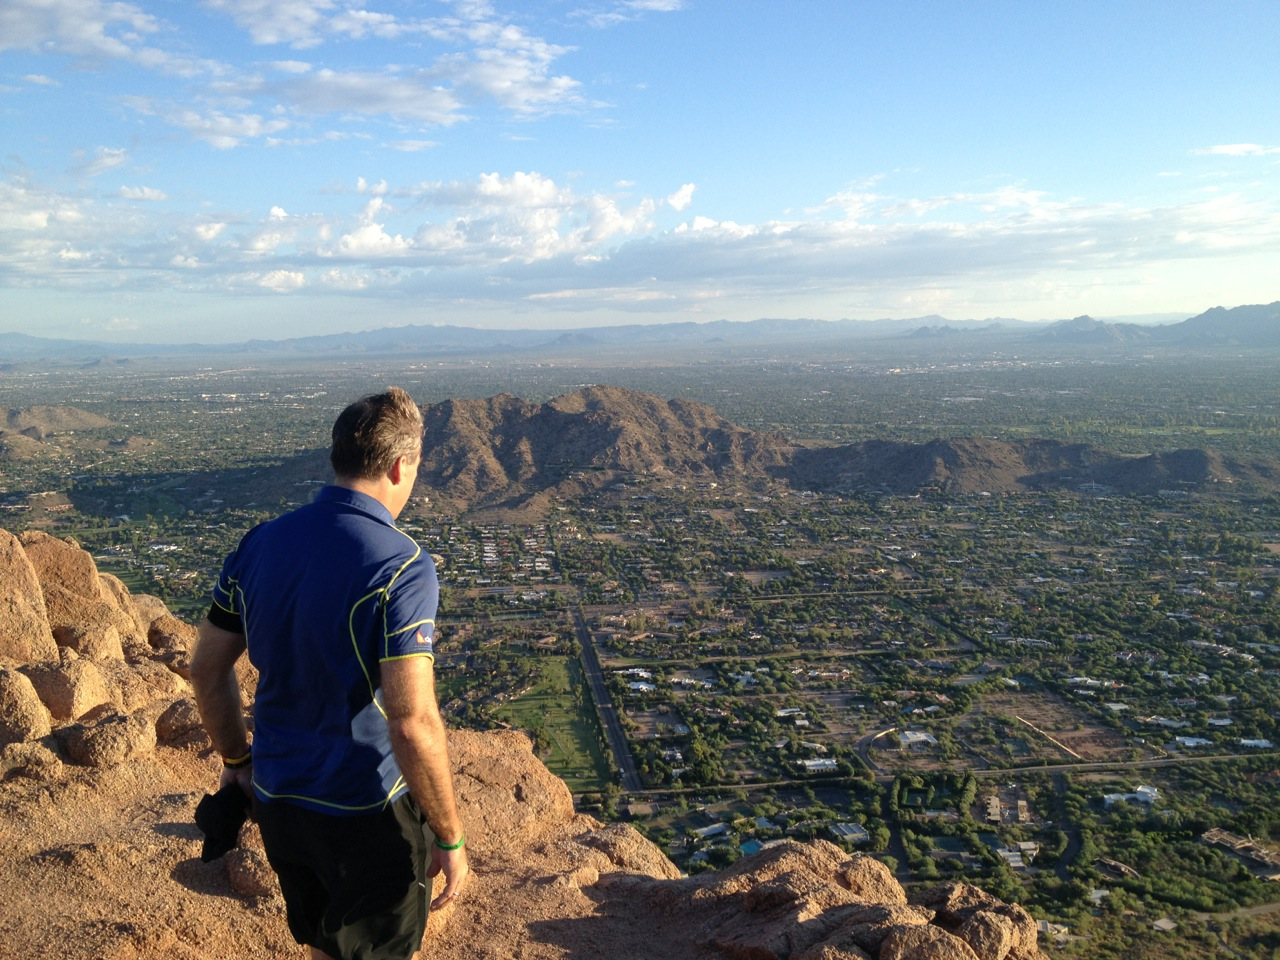 Hiking in Scottsdale